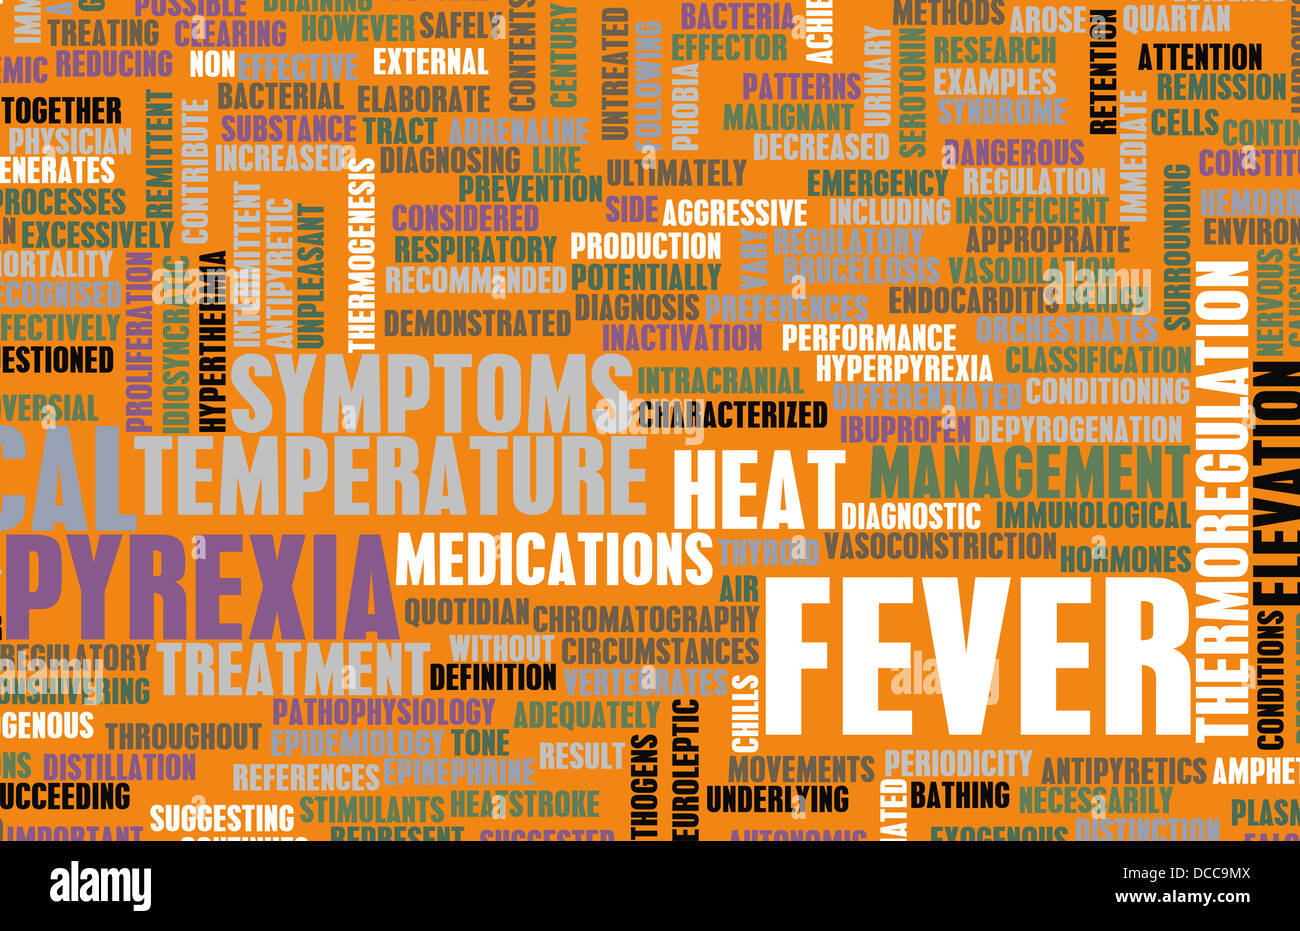 Hyperpyrexia Stock Photos & Hyperpyrexia Stock Images - Alamy